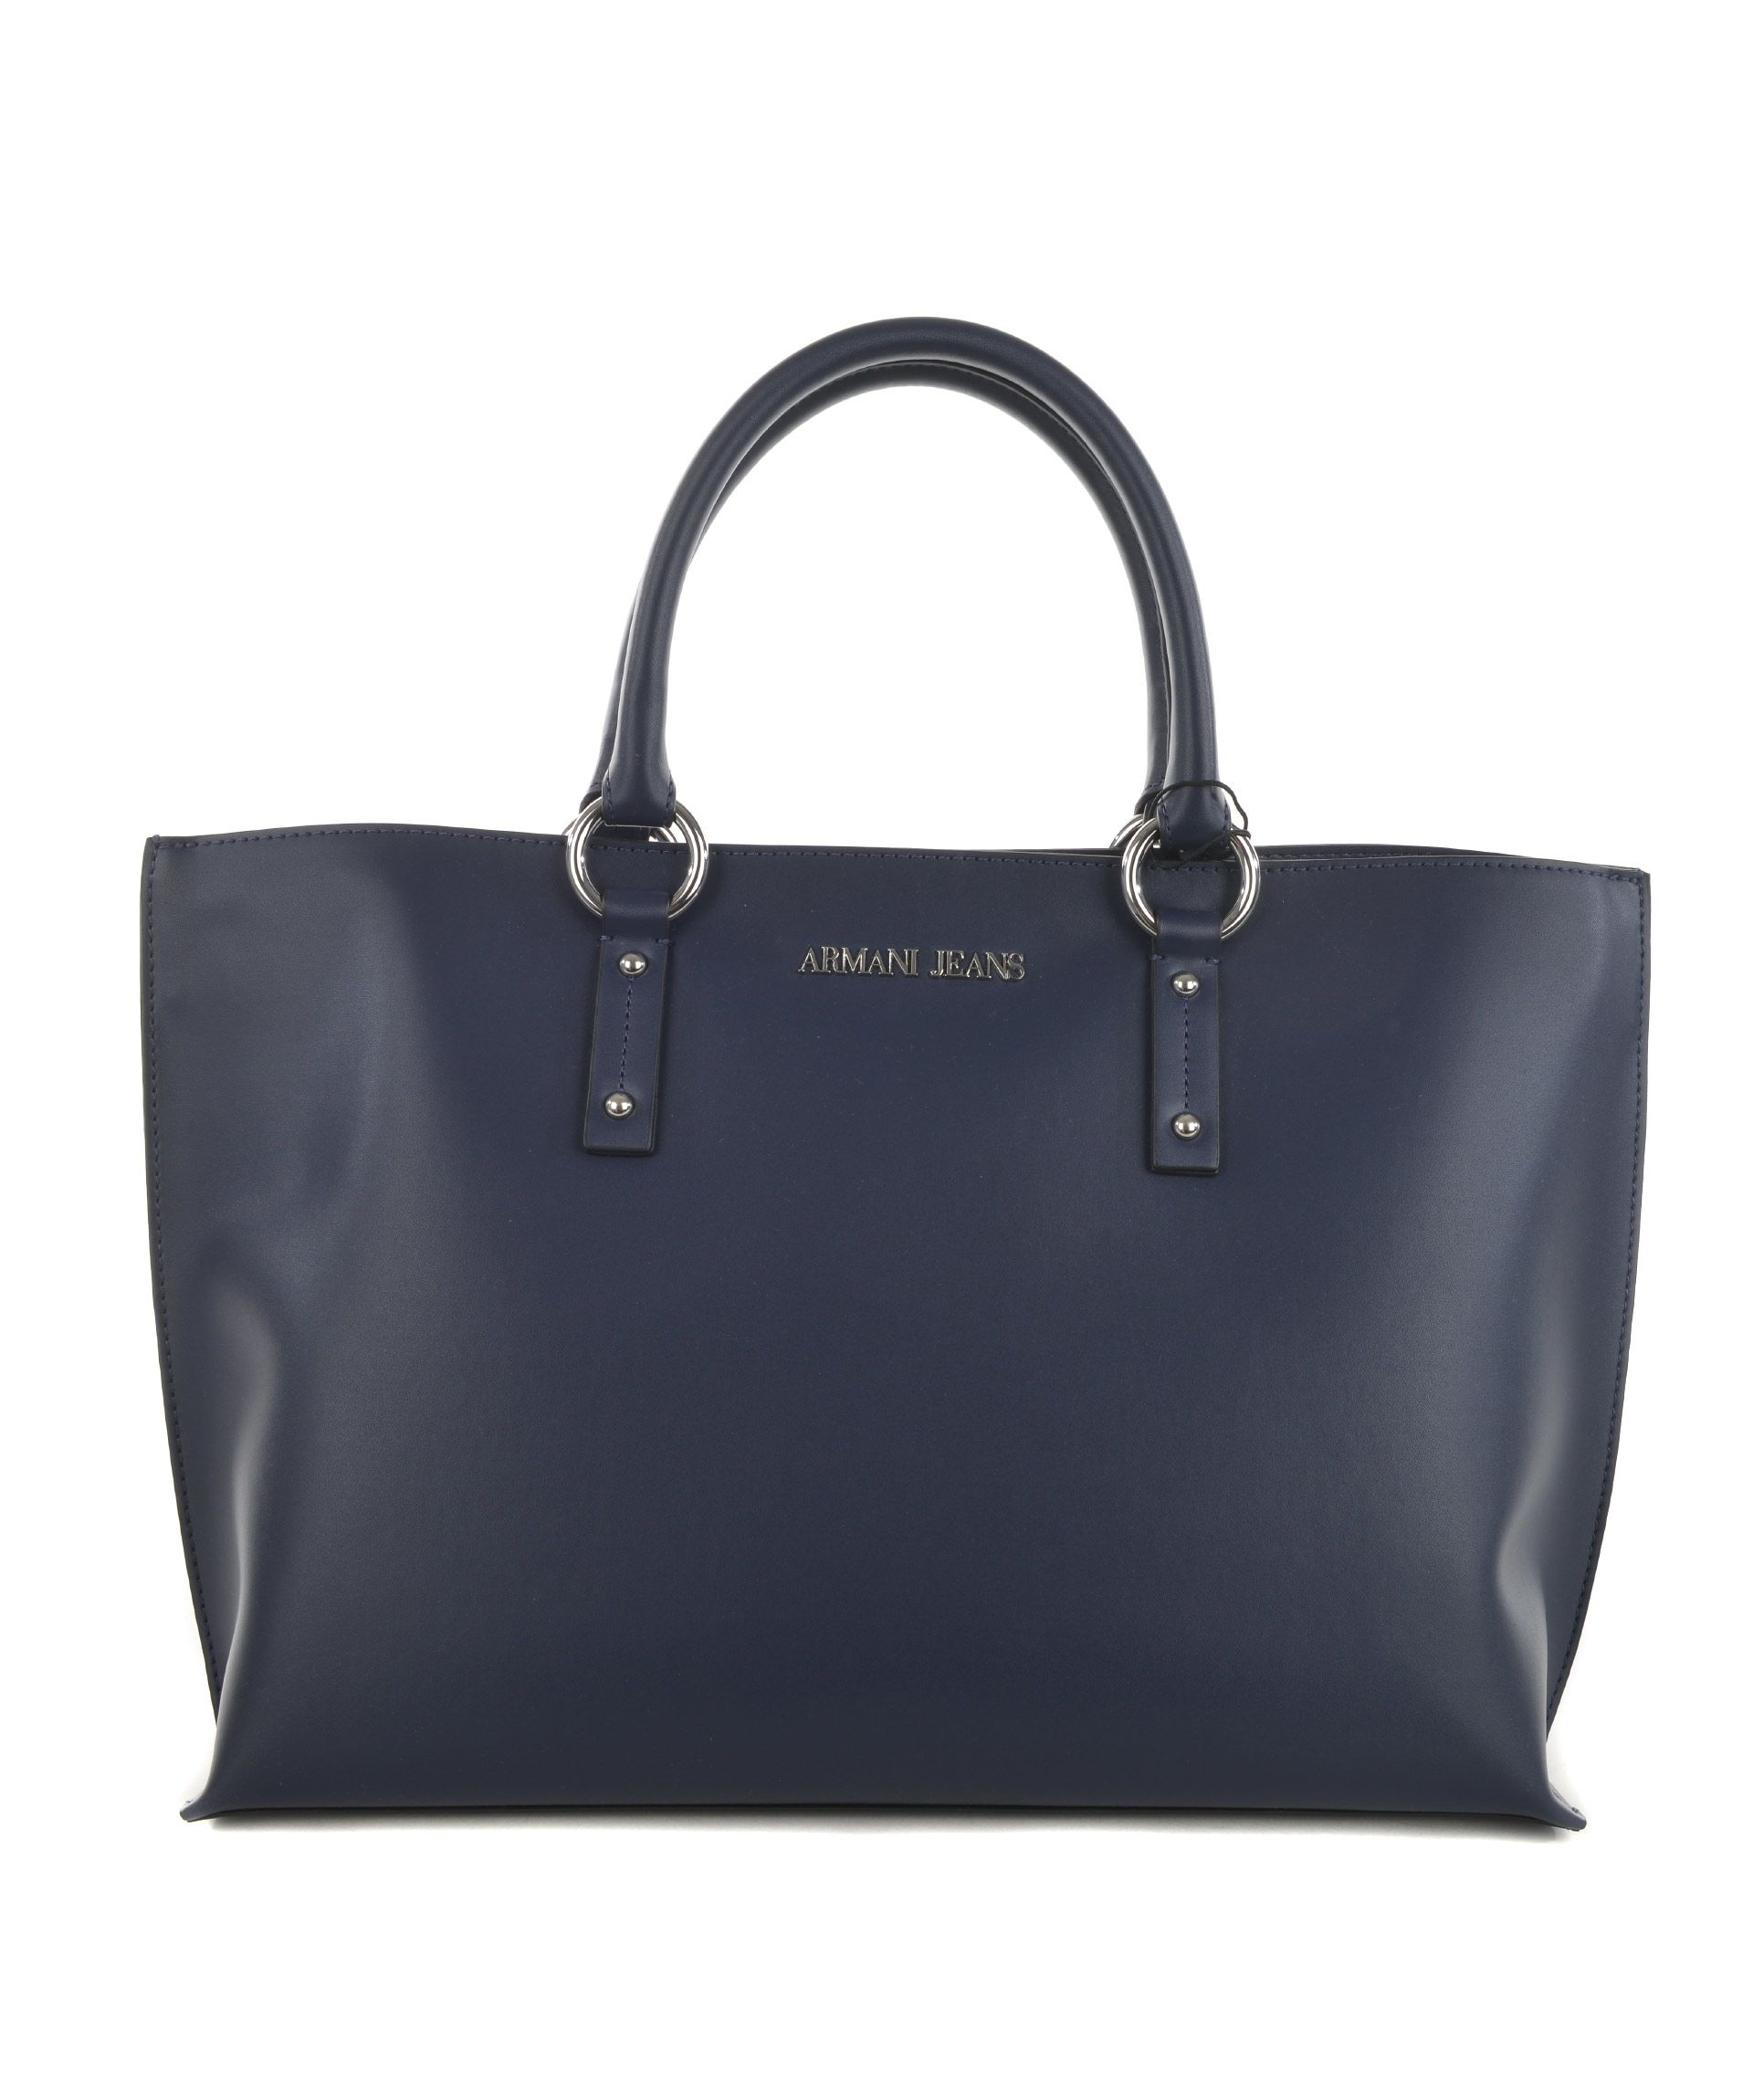 Armani Jeans Large Top Handle Tote